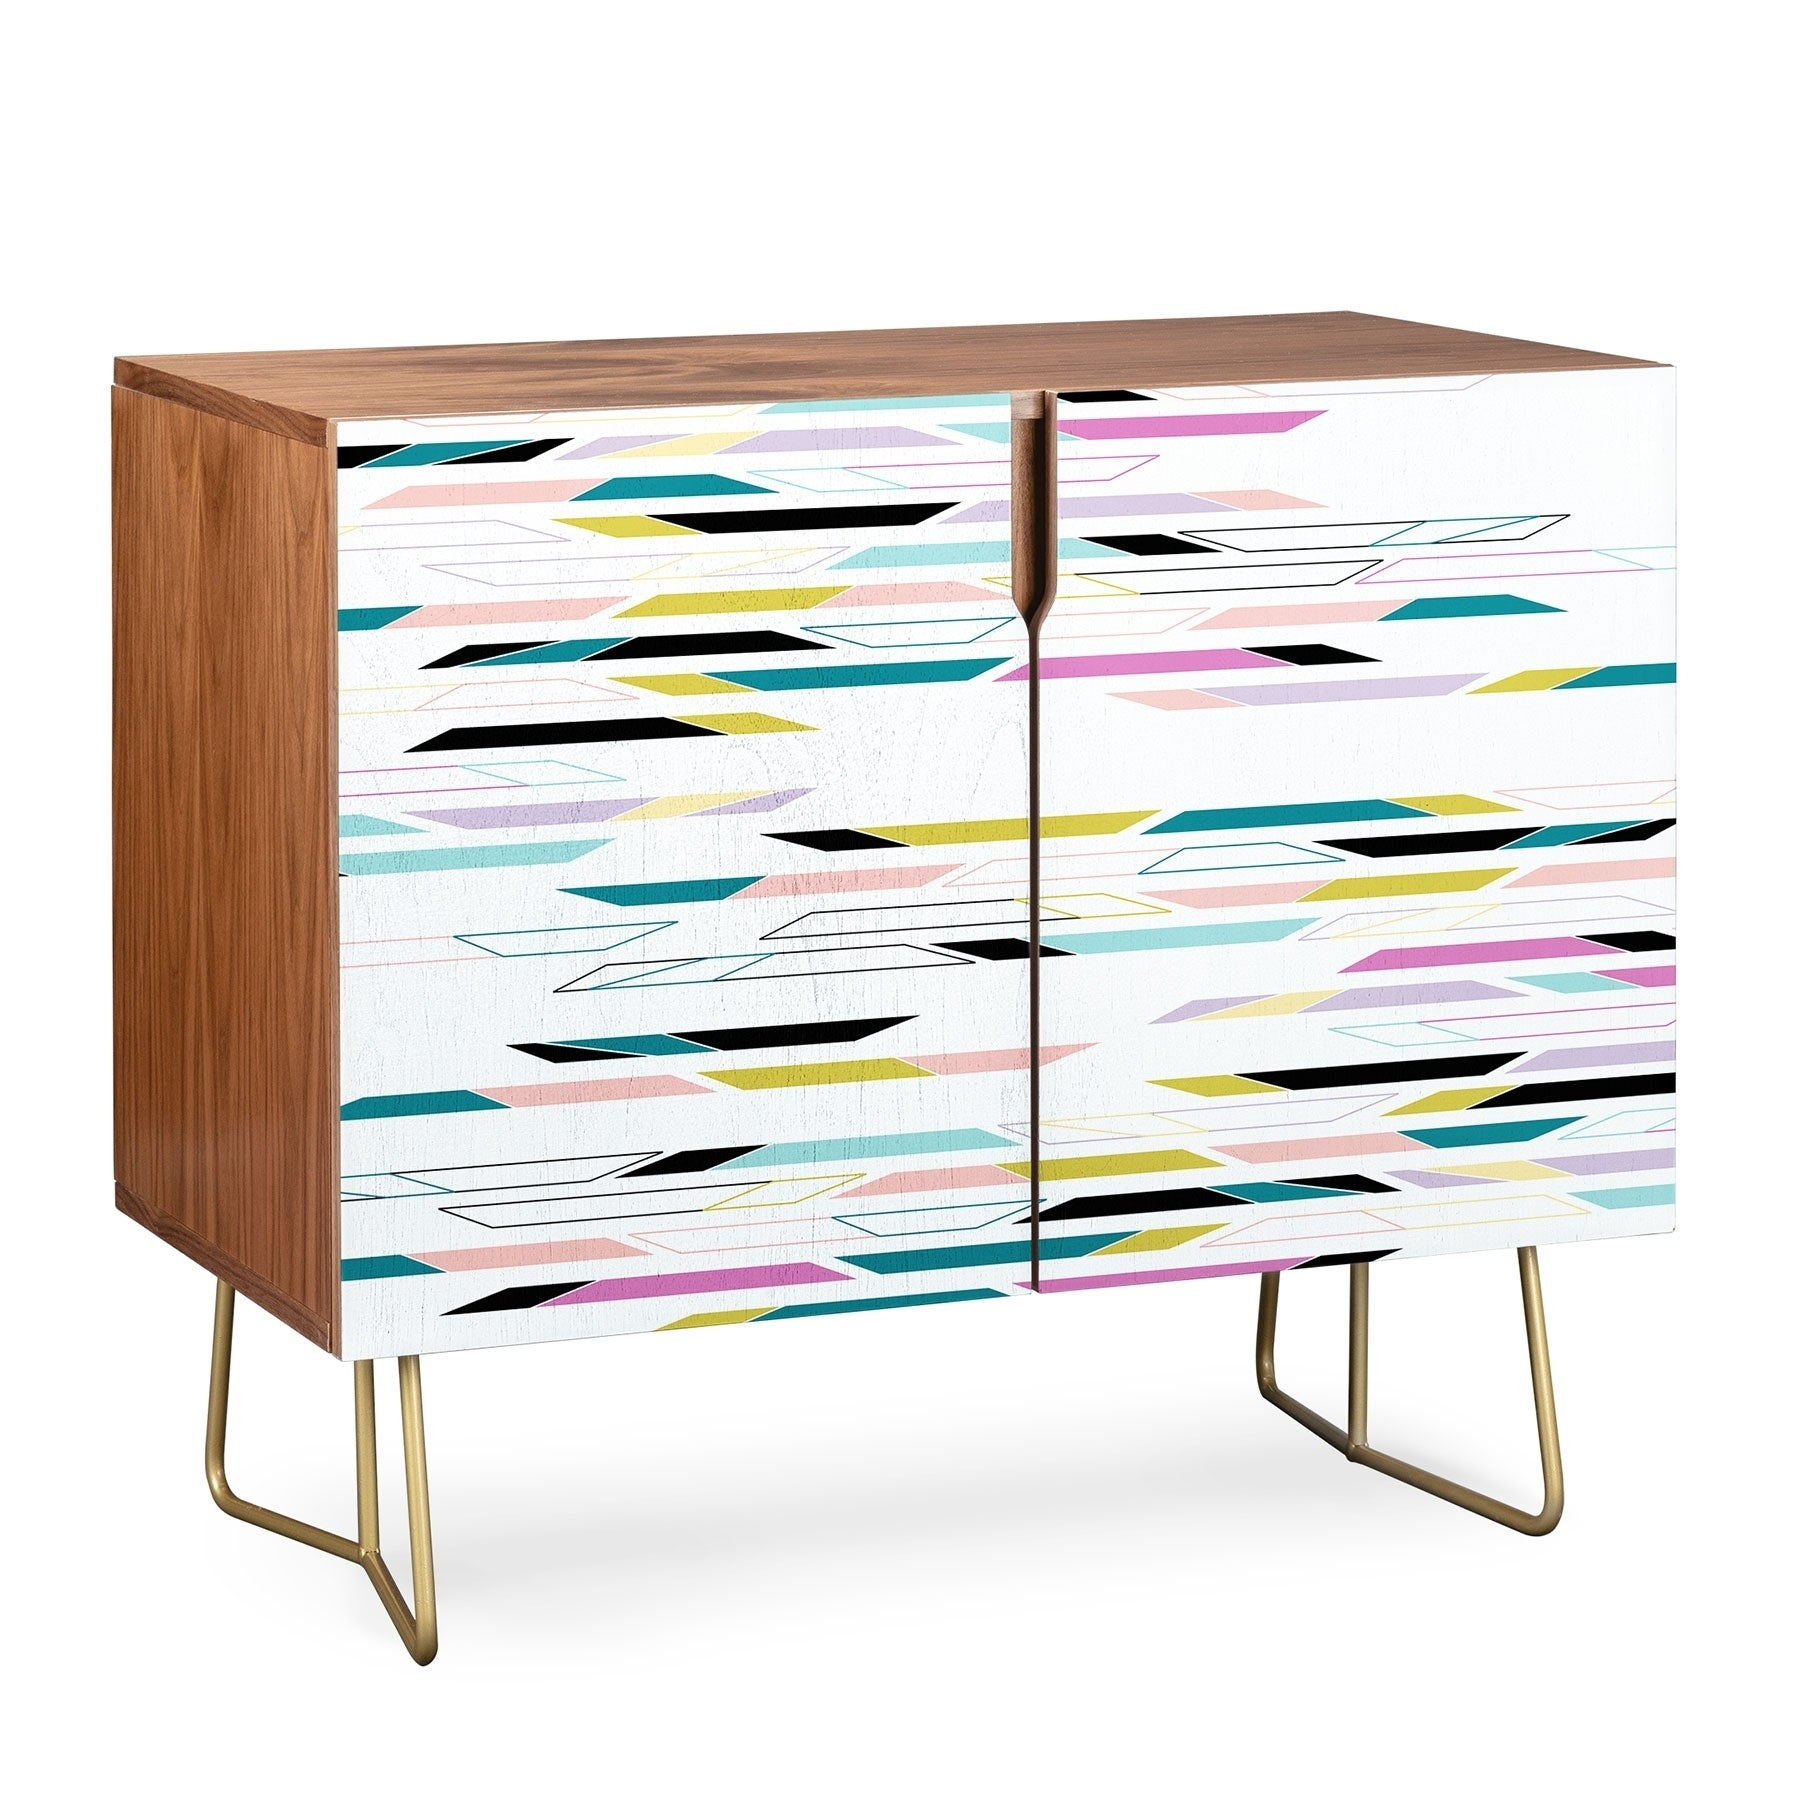 Deny Designs Multi Colored Geometric Shapes Credenza (Birch Or Walnut, 3  Leg Options) with Multi Colored Geometric Shapes Credenzas (Image 16 of 30)